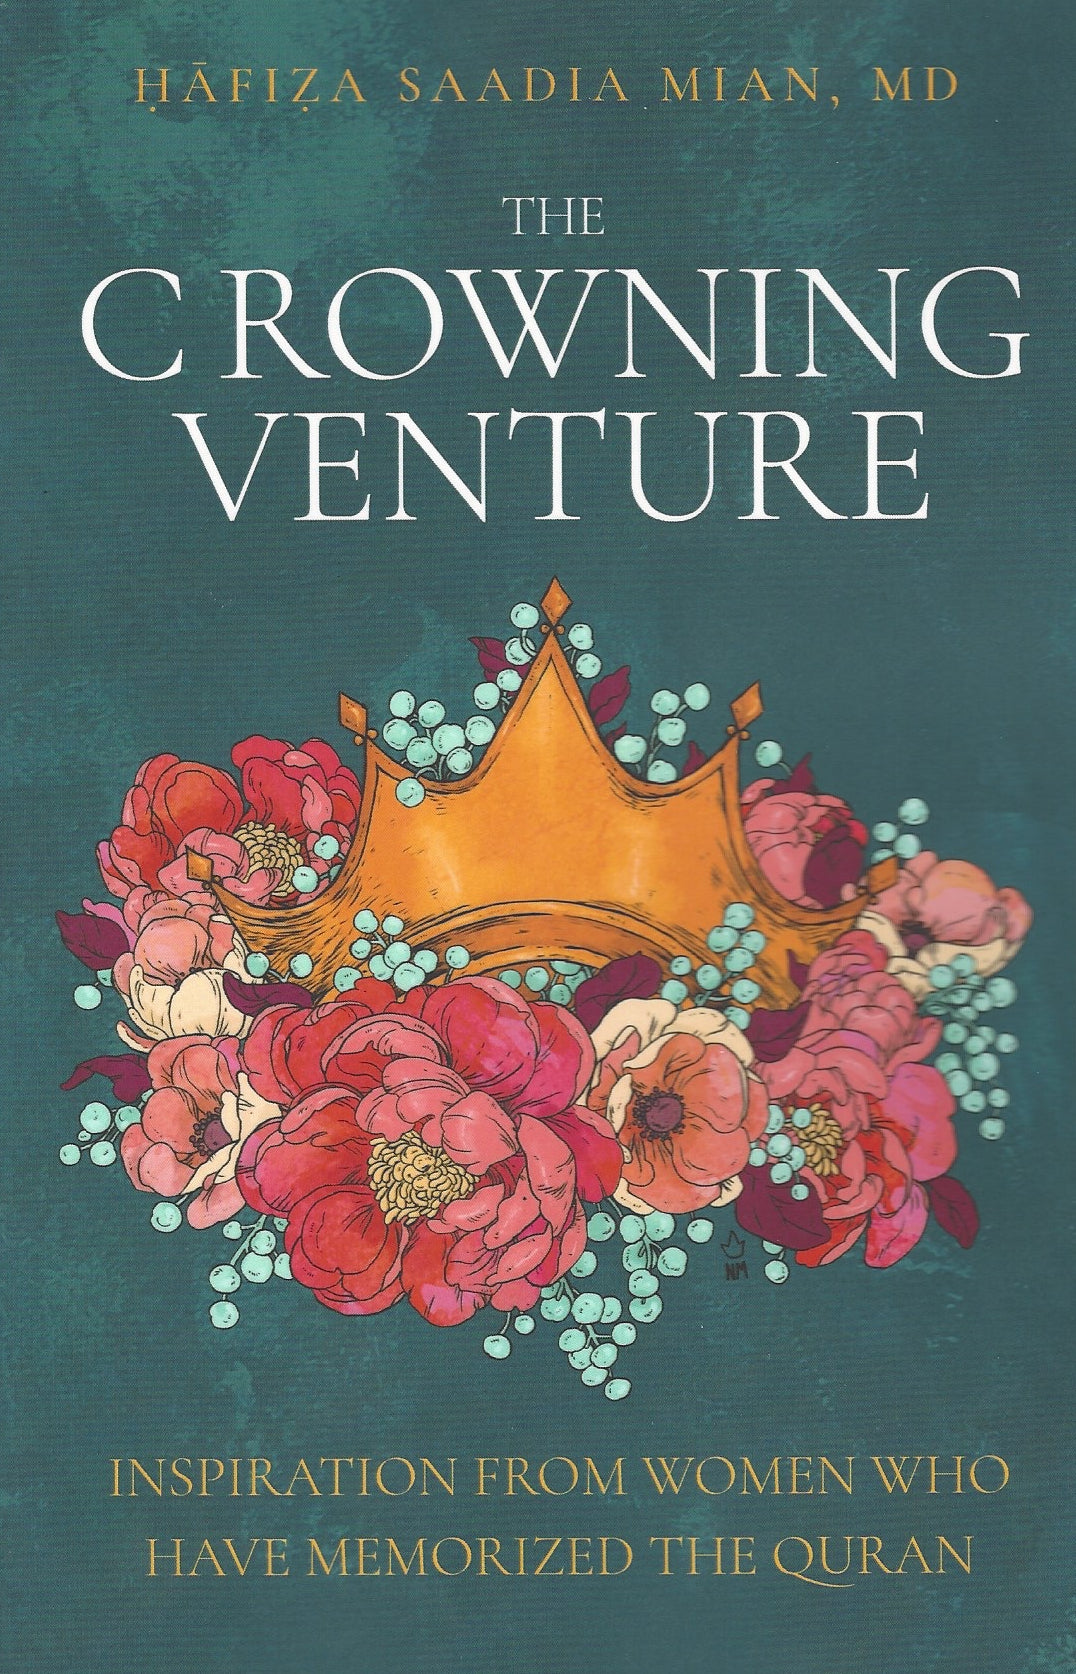 The Crowning Venture